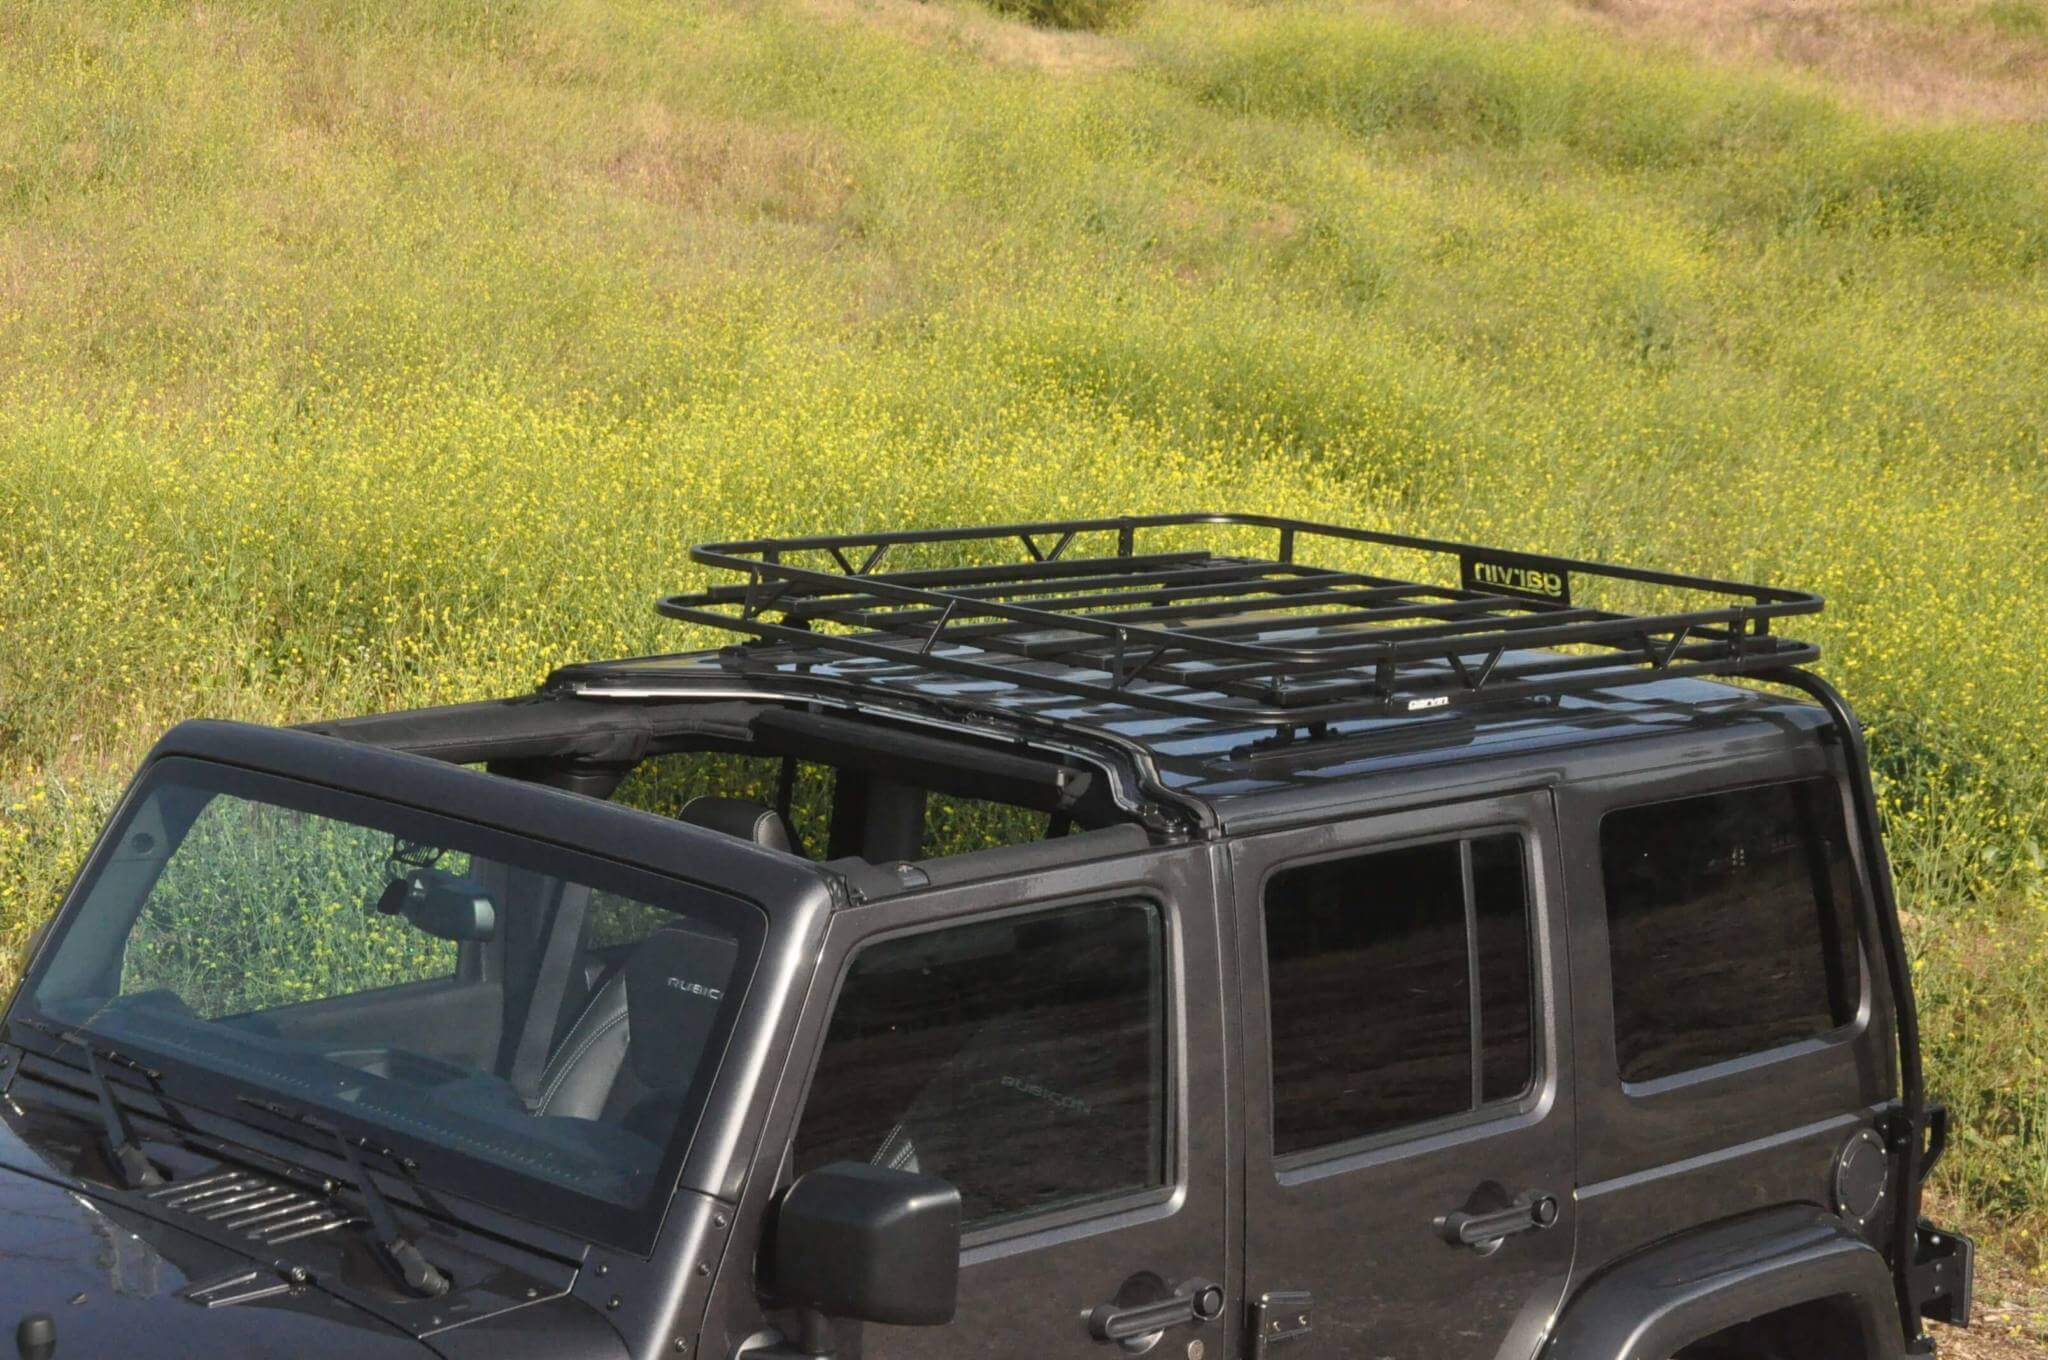 cheap the bar click forum fmvuhvg good rack roof been has view full resized to this image wrangler jeep